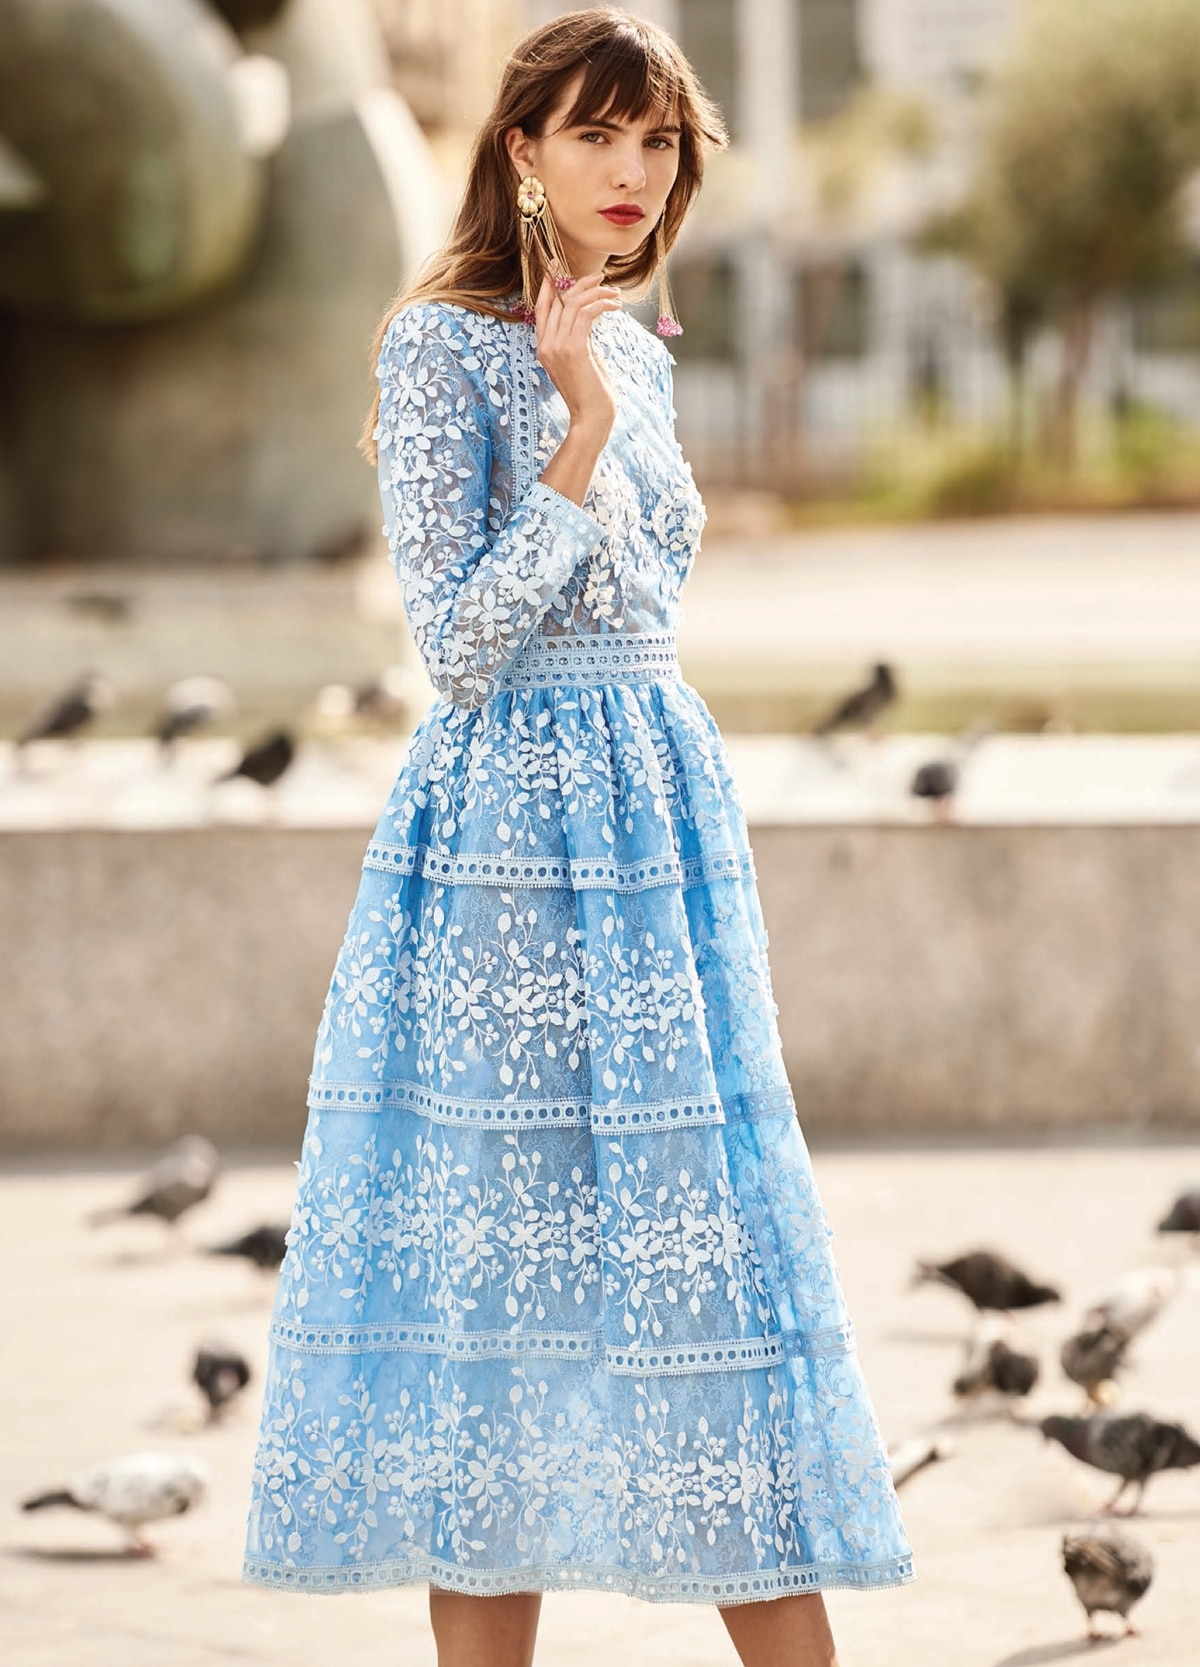 Midi long sleeved light blue dress with 3D prints Christos Costarellos